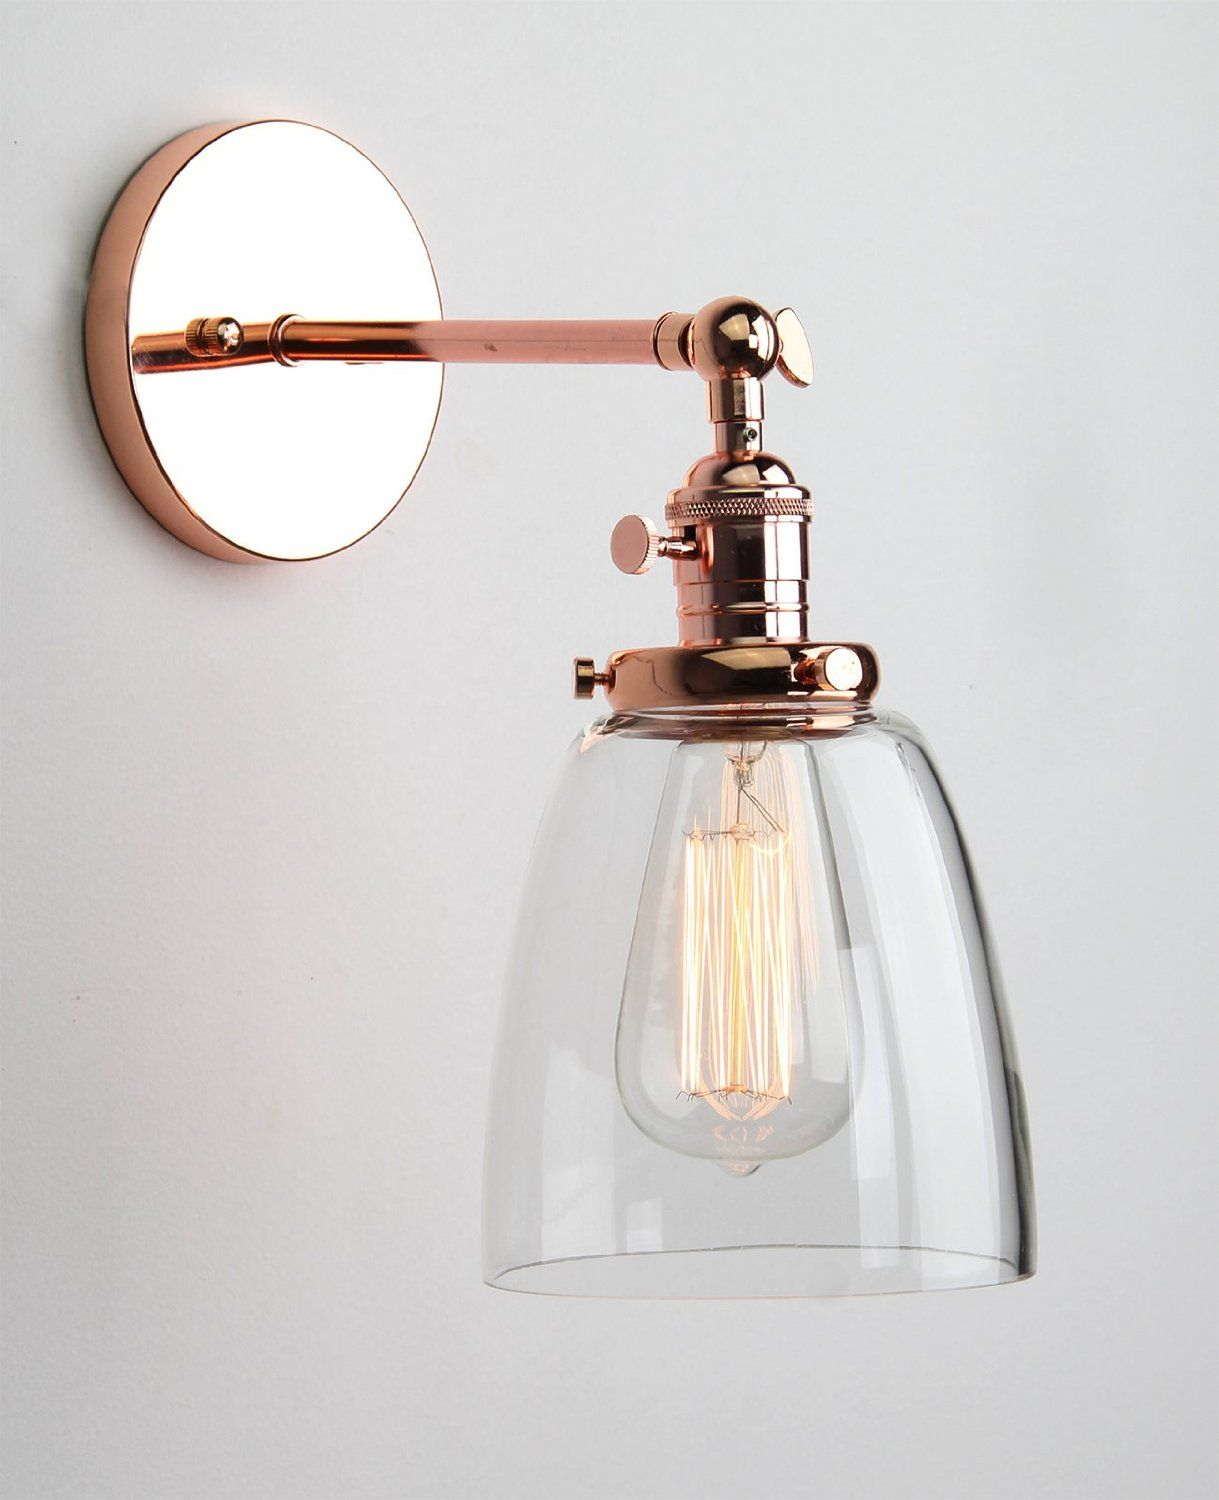 Gold Wall Lampshades : Permo Industrial Edison Antique Single Sconce With Oval Cone Clear Glass Shade 1-light Wall ...